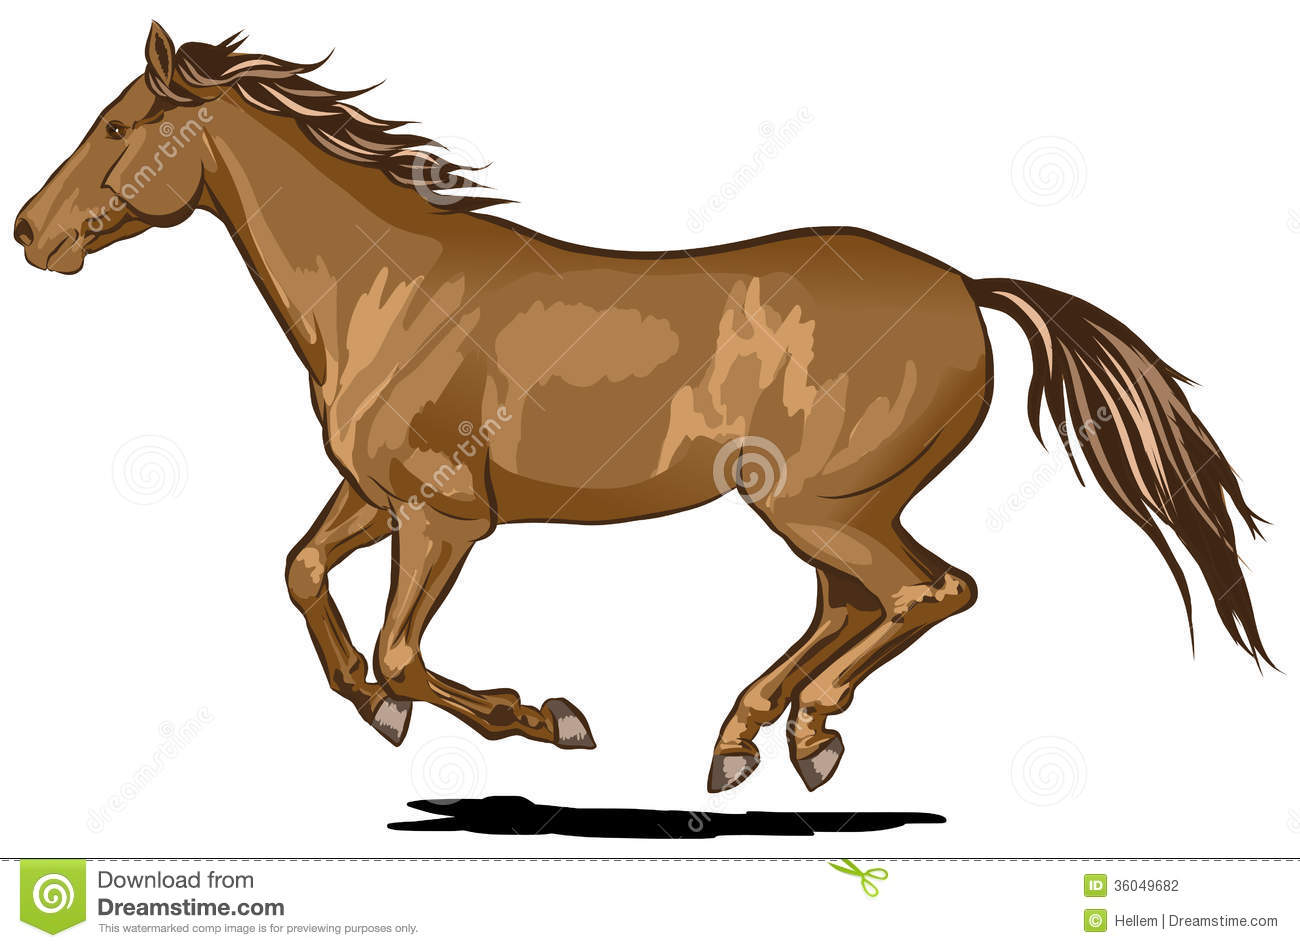 Horse running clipart - photo#4